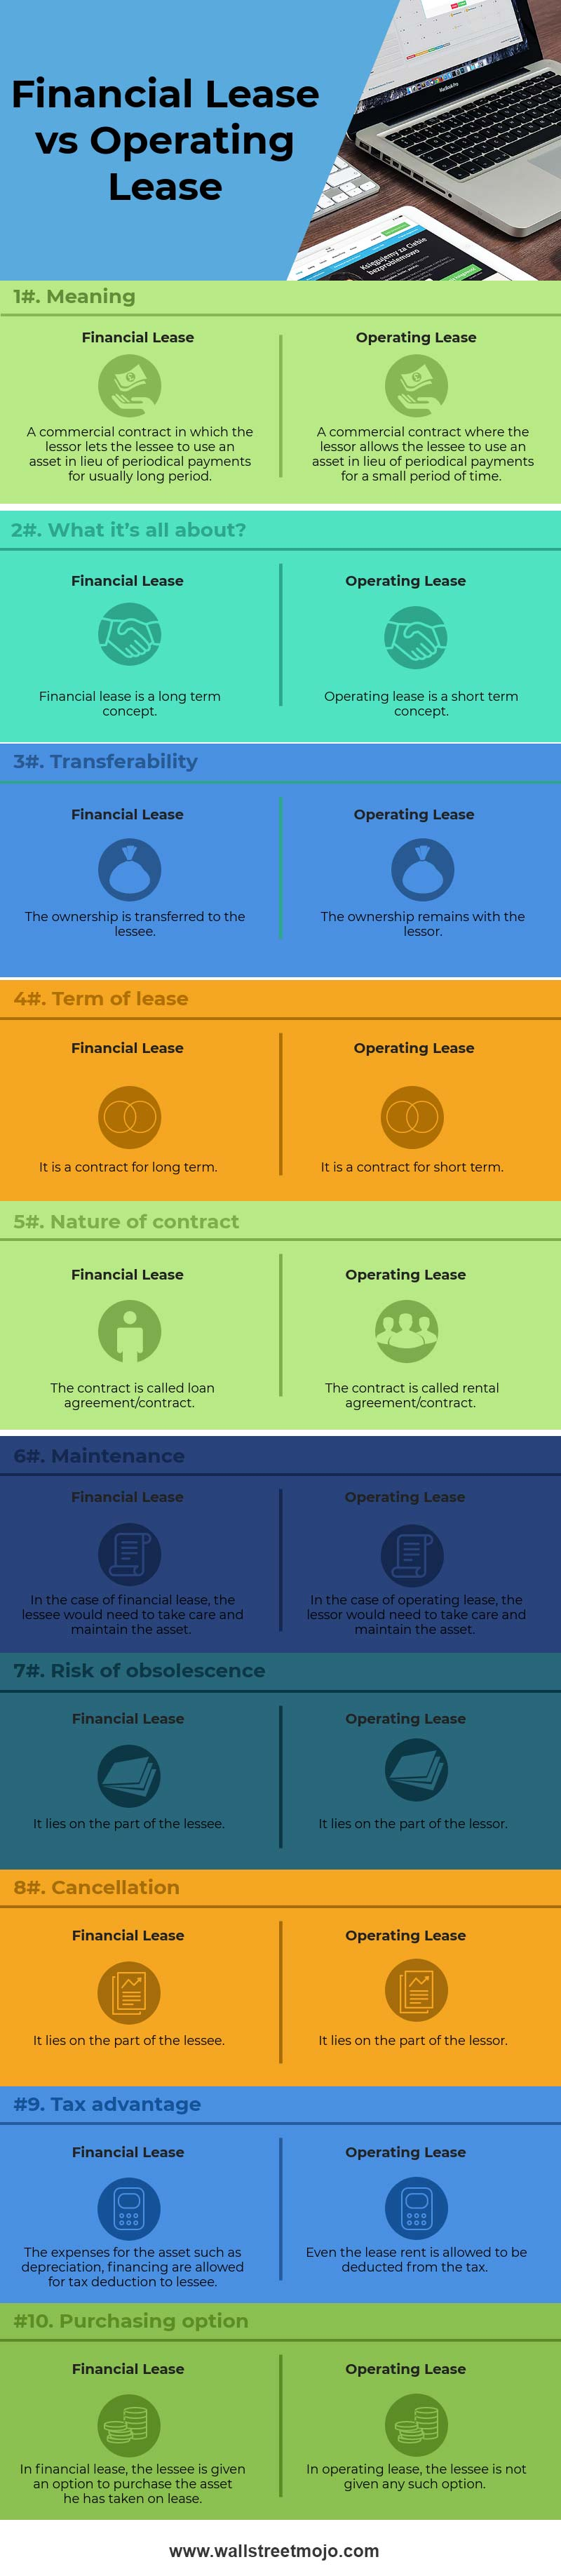 Financial-Lease-vs-Operating-Lease